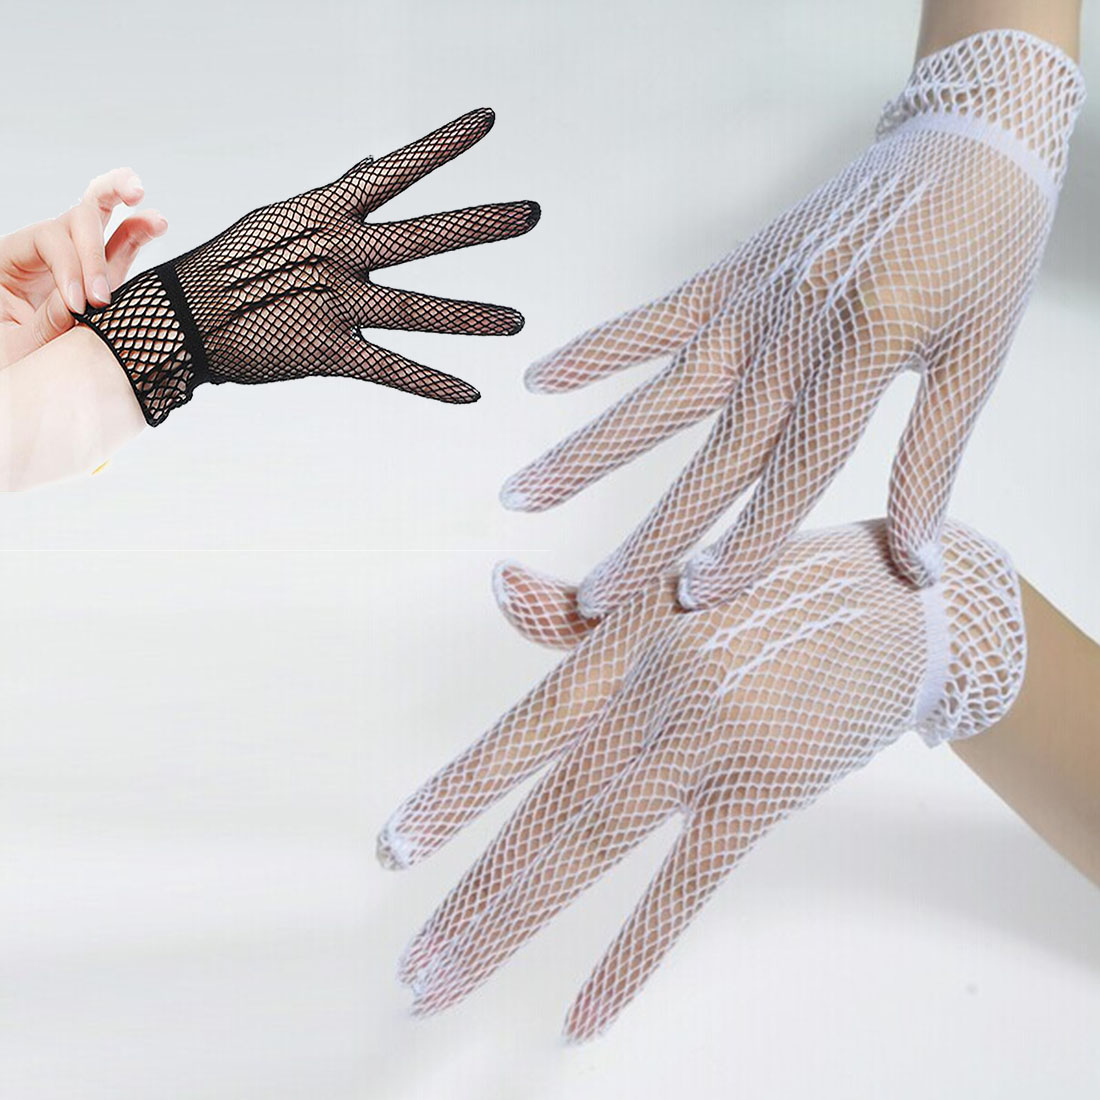 2017 Fashion Top Sell Fishnet Mesh Gloves Fashion Women Gloves Summer  Protection Lace Elegant Lady Style Gloves Foe Woman